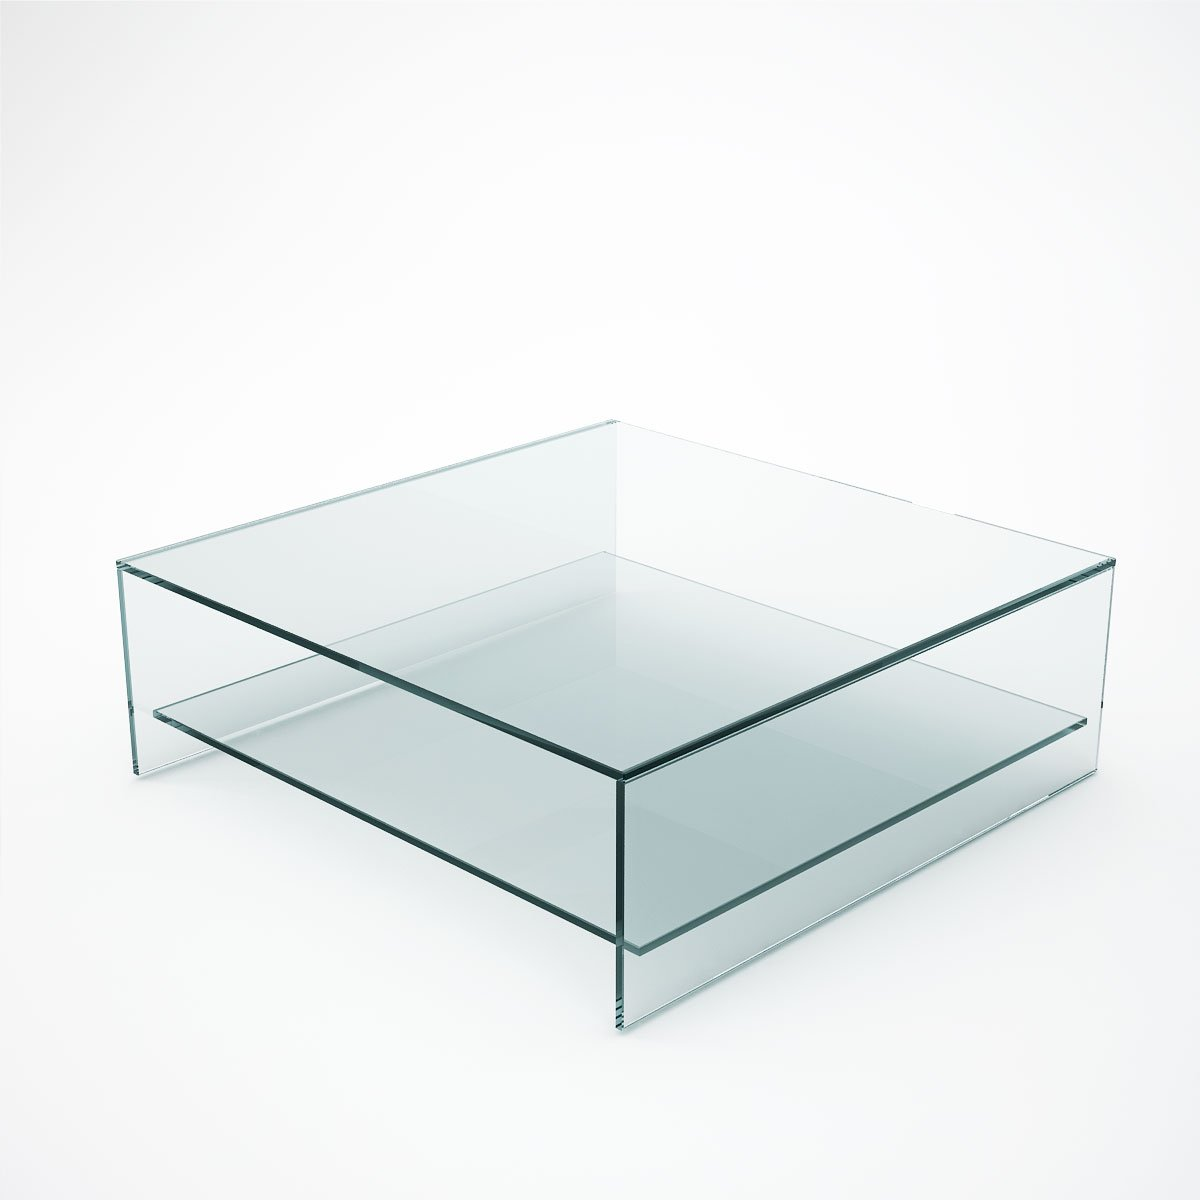 Judd square glass coffee table with shelf klarity for Glass furniture